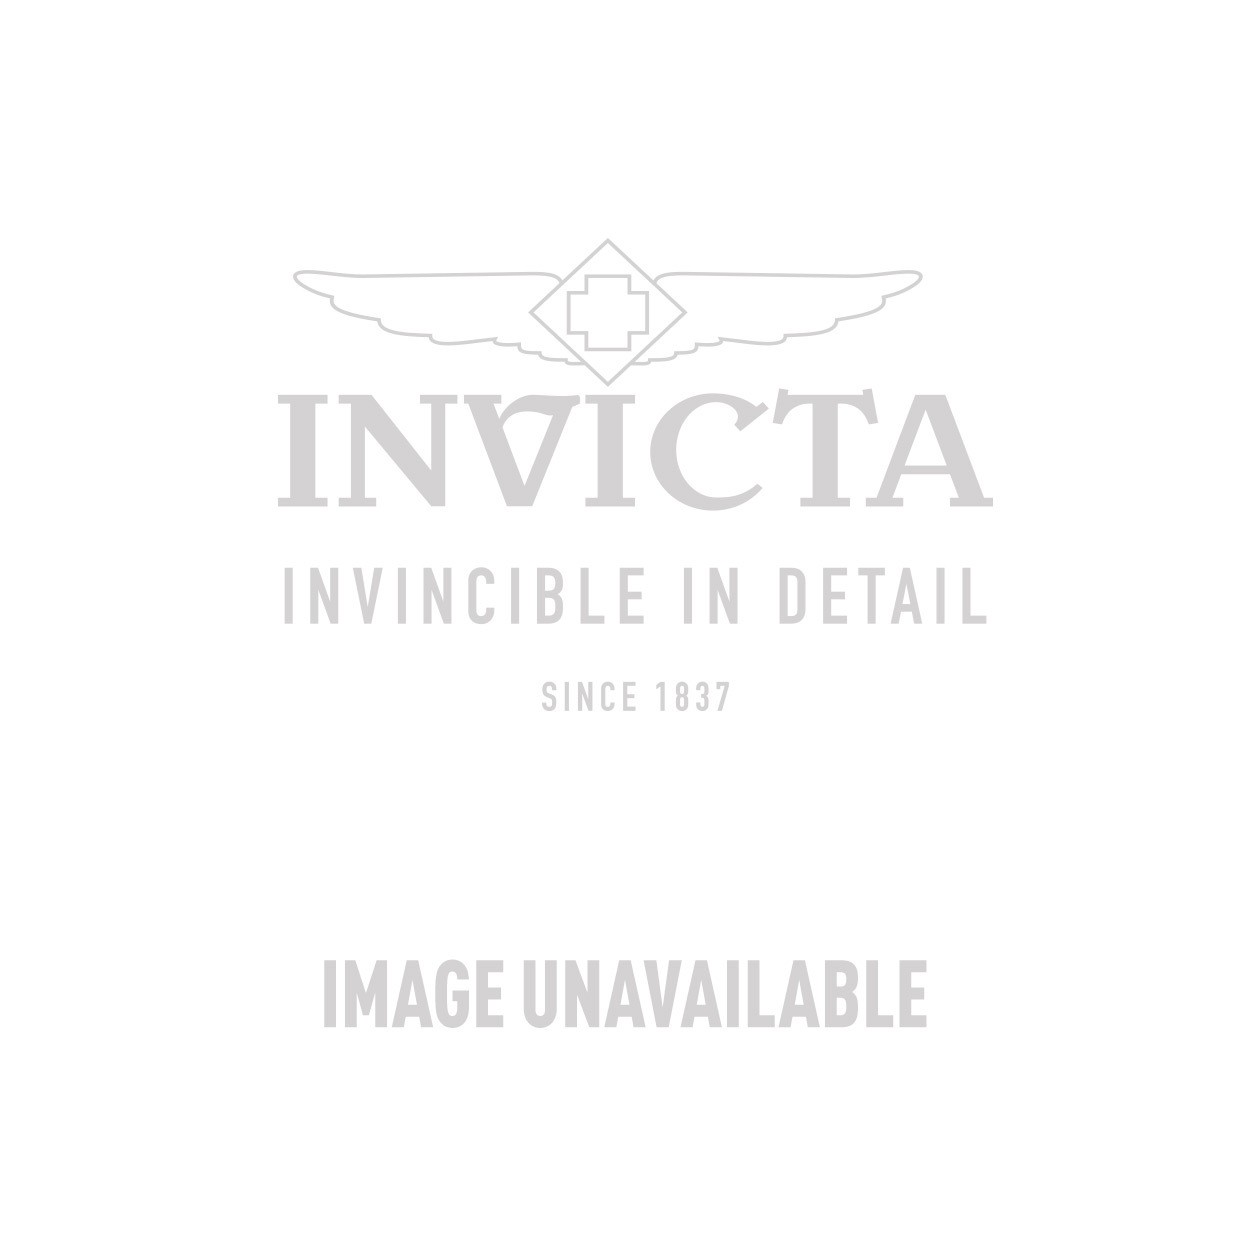 Invicta Cuadro Swiss Movement Quartz Watch - Stainless Steel case with Black tone Leather band - Model 1455